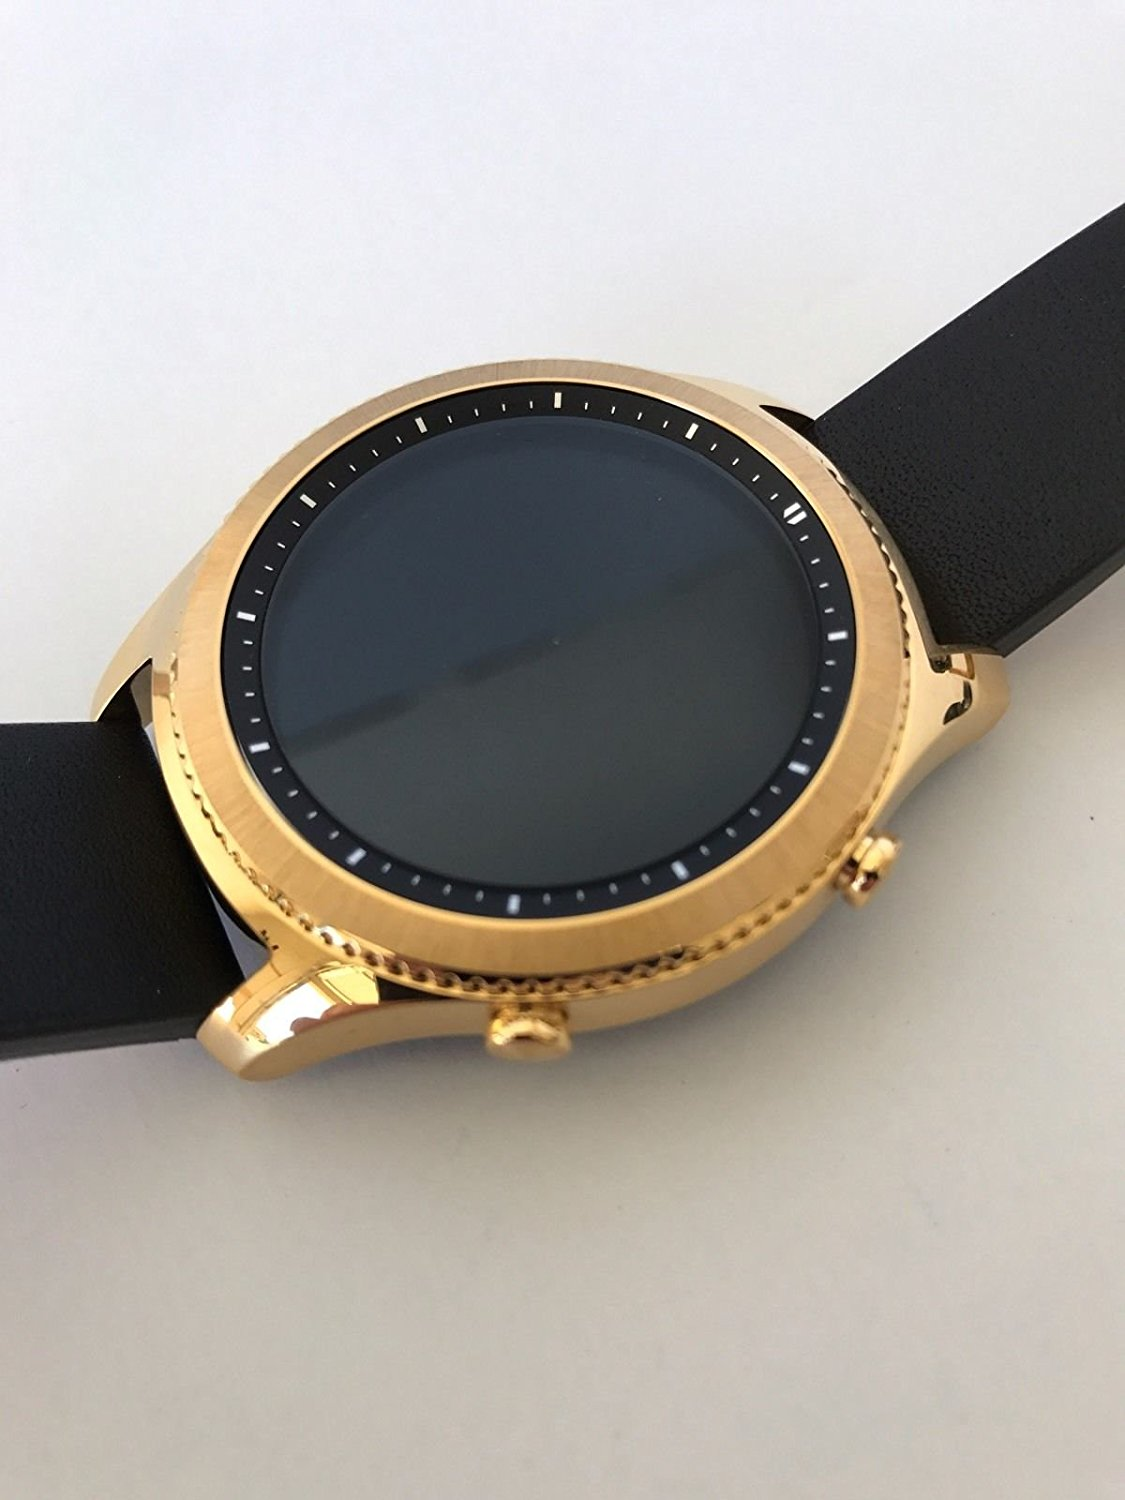 Samsung Gear S3 gold plated 2